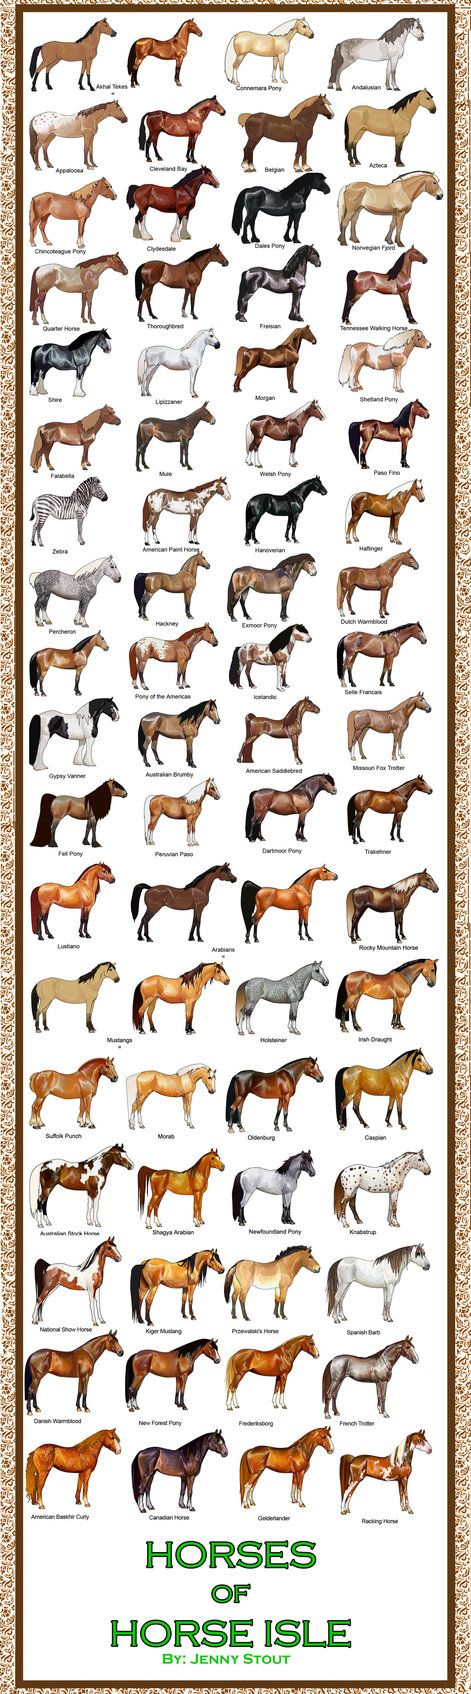 Horse colors patterns for artist reference by ninquetolliel on horse colors patterns for artist reference by ninquetolliel on deviantart animal anatomy artist reference pinterest genetics chart and horse nvjuhfo Choice Image